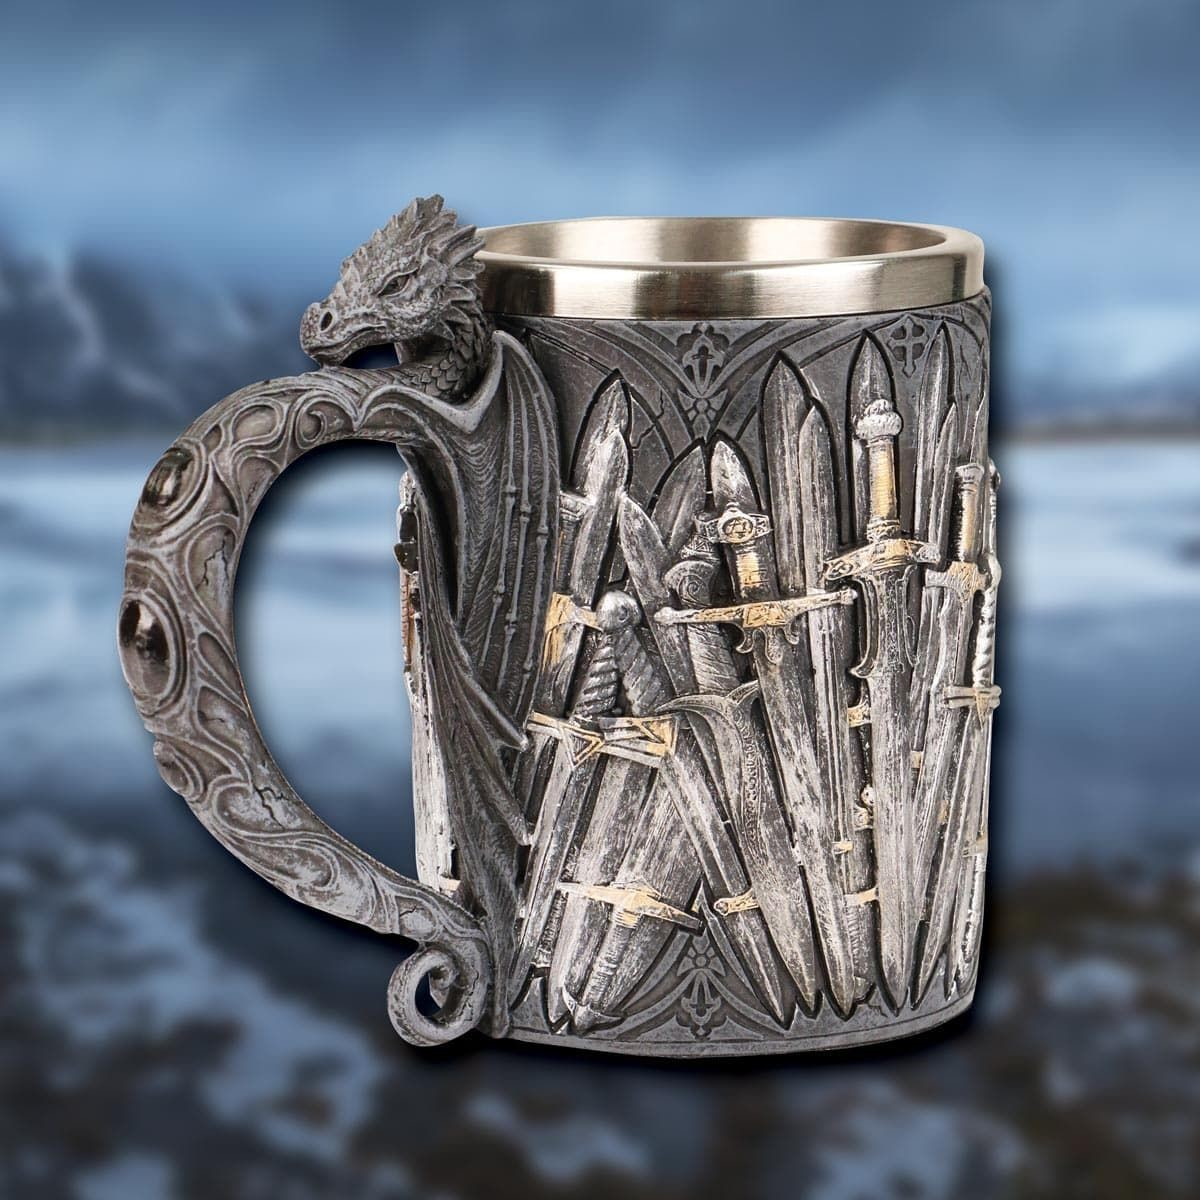 Of Swords & Dragons Mug